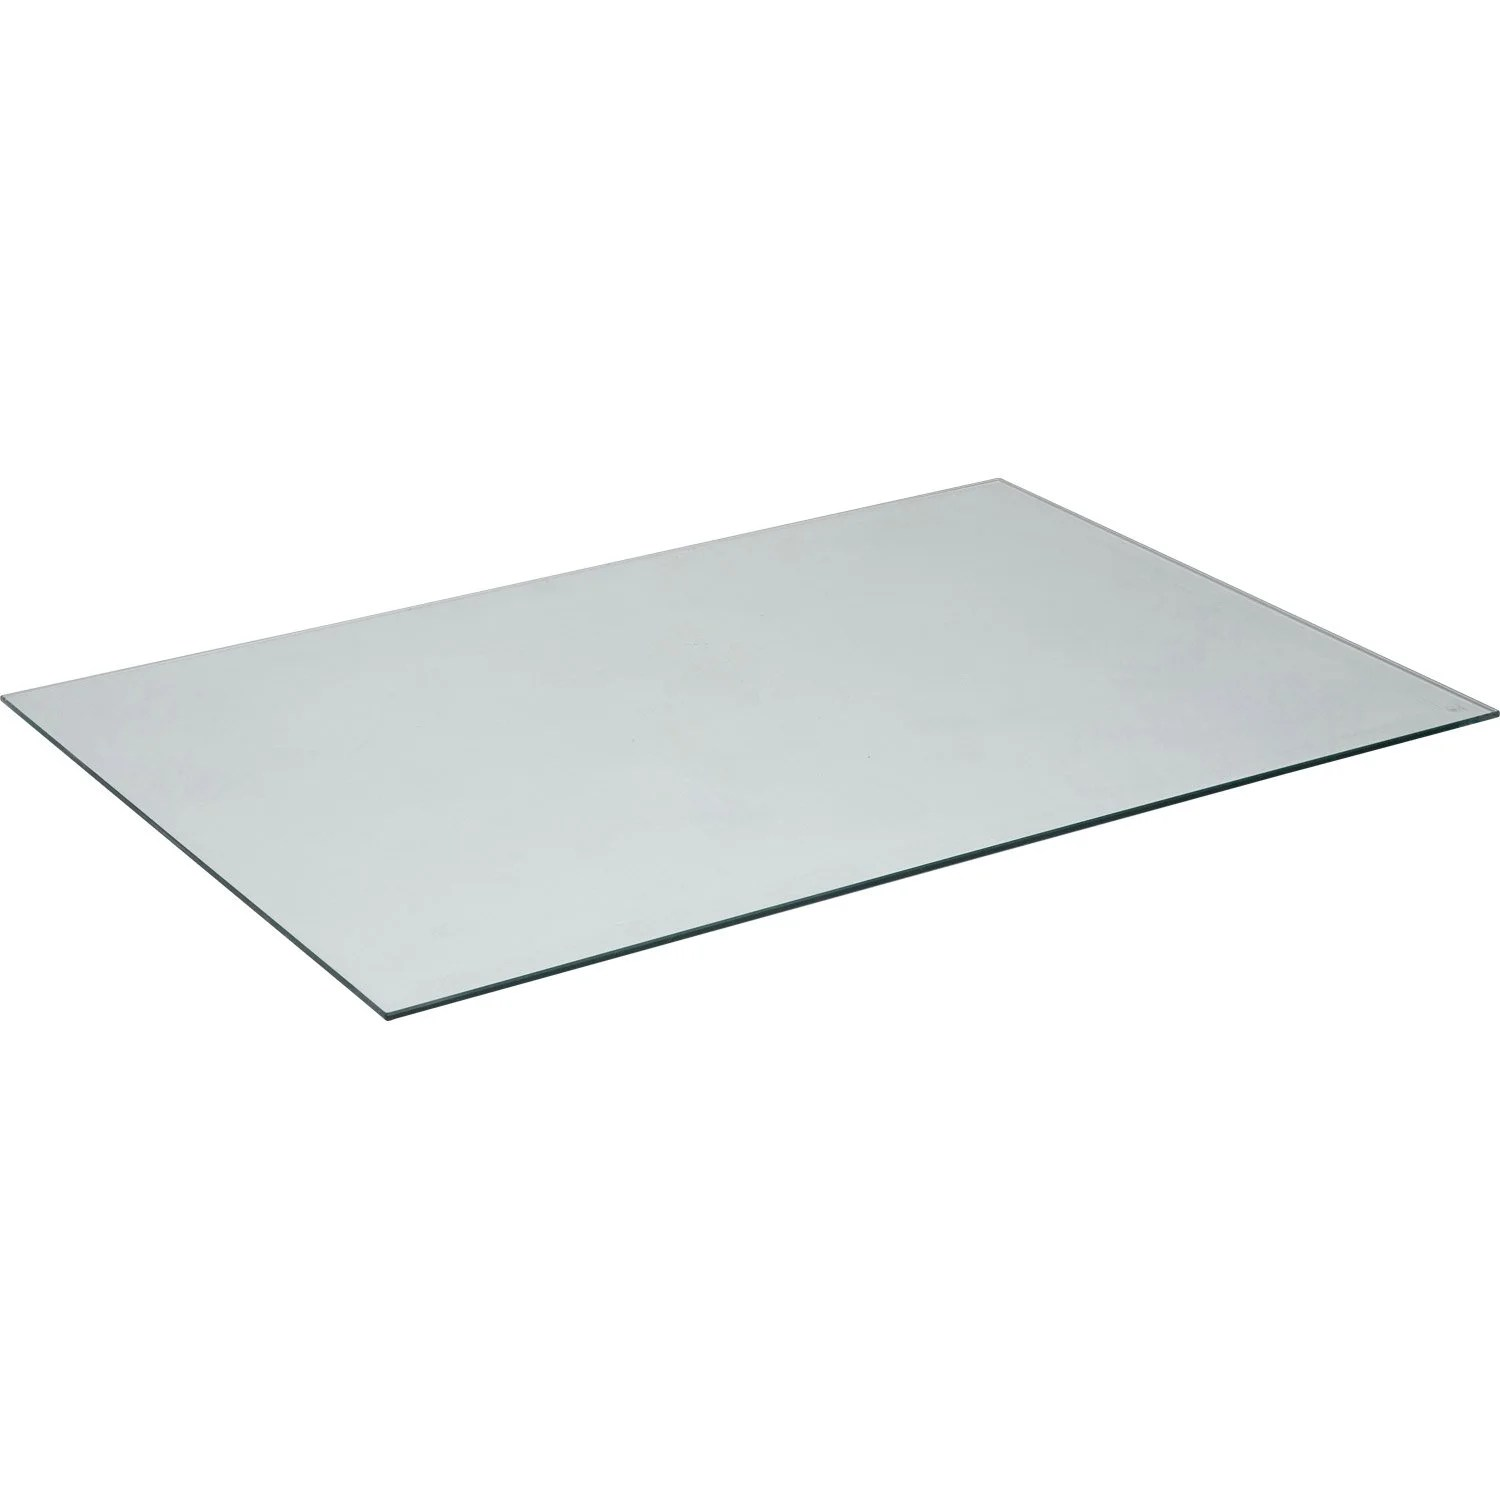 Protege Table En Verre Plateau De Table Verre L 140 X L 72 Cm X Ep 8 Mm